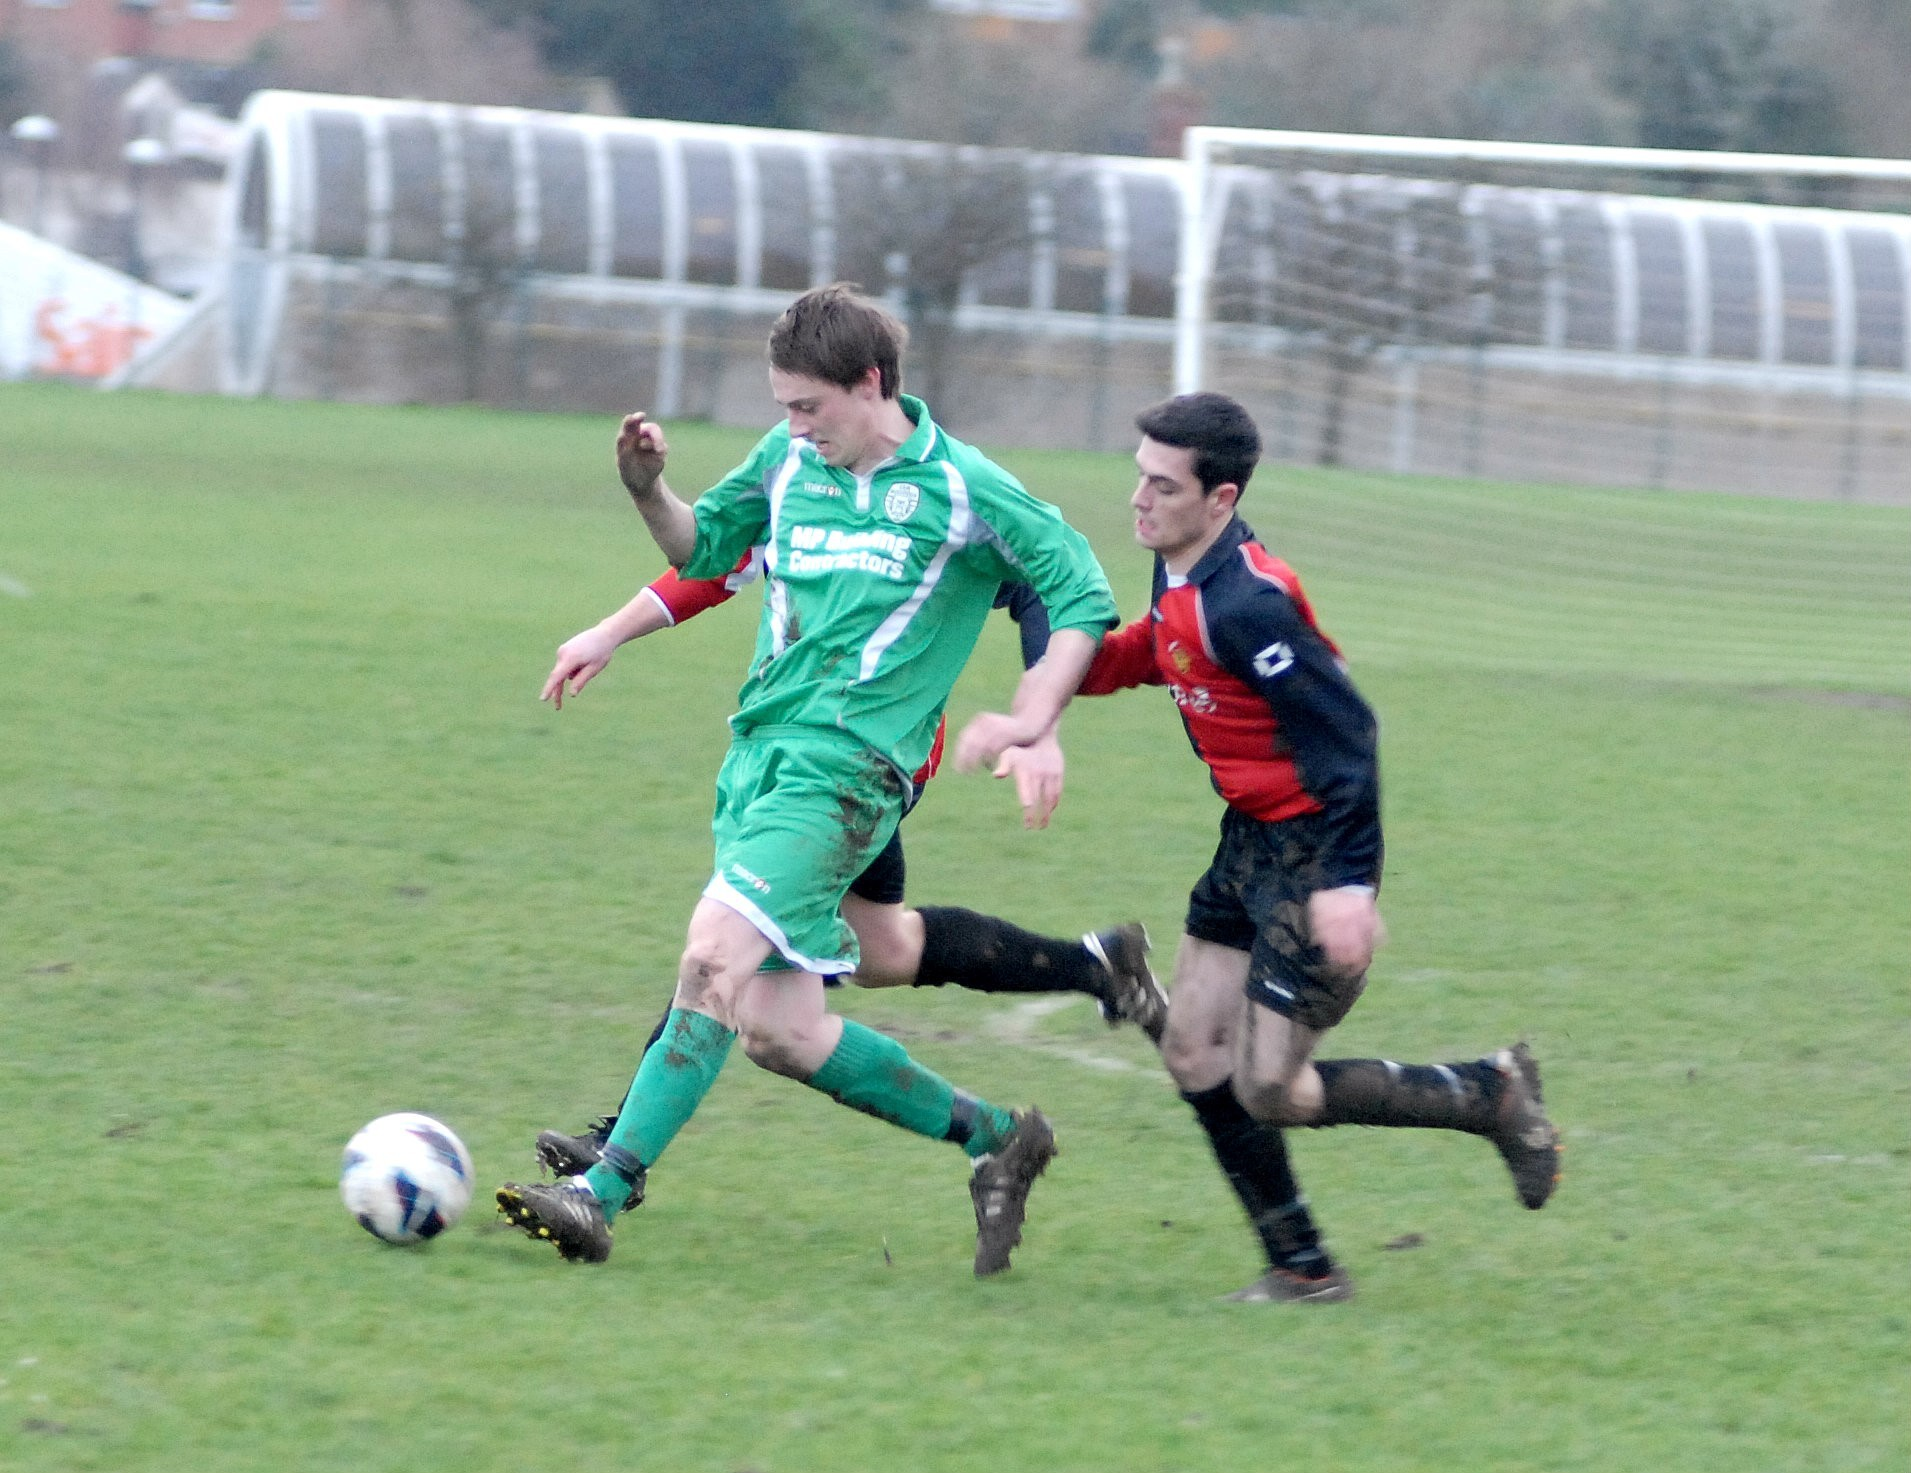 Football: Cam Bulldogs snatch late win at Dursley Town